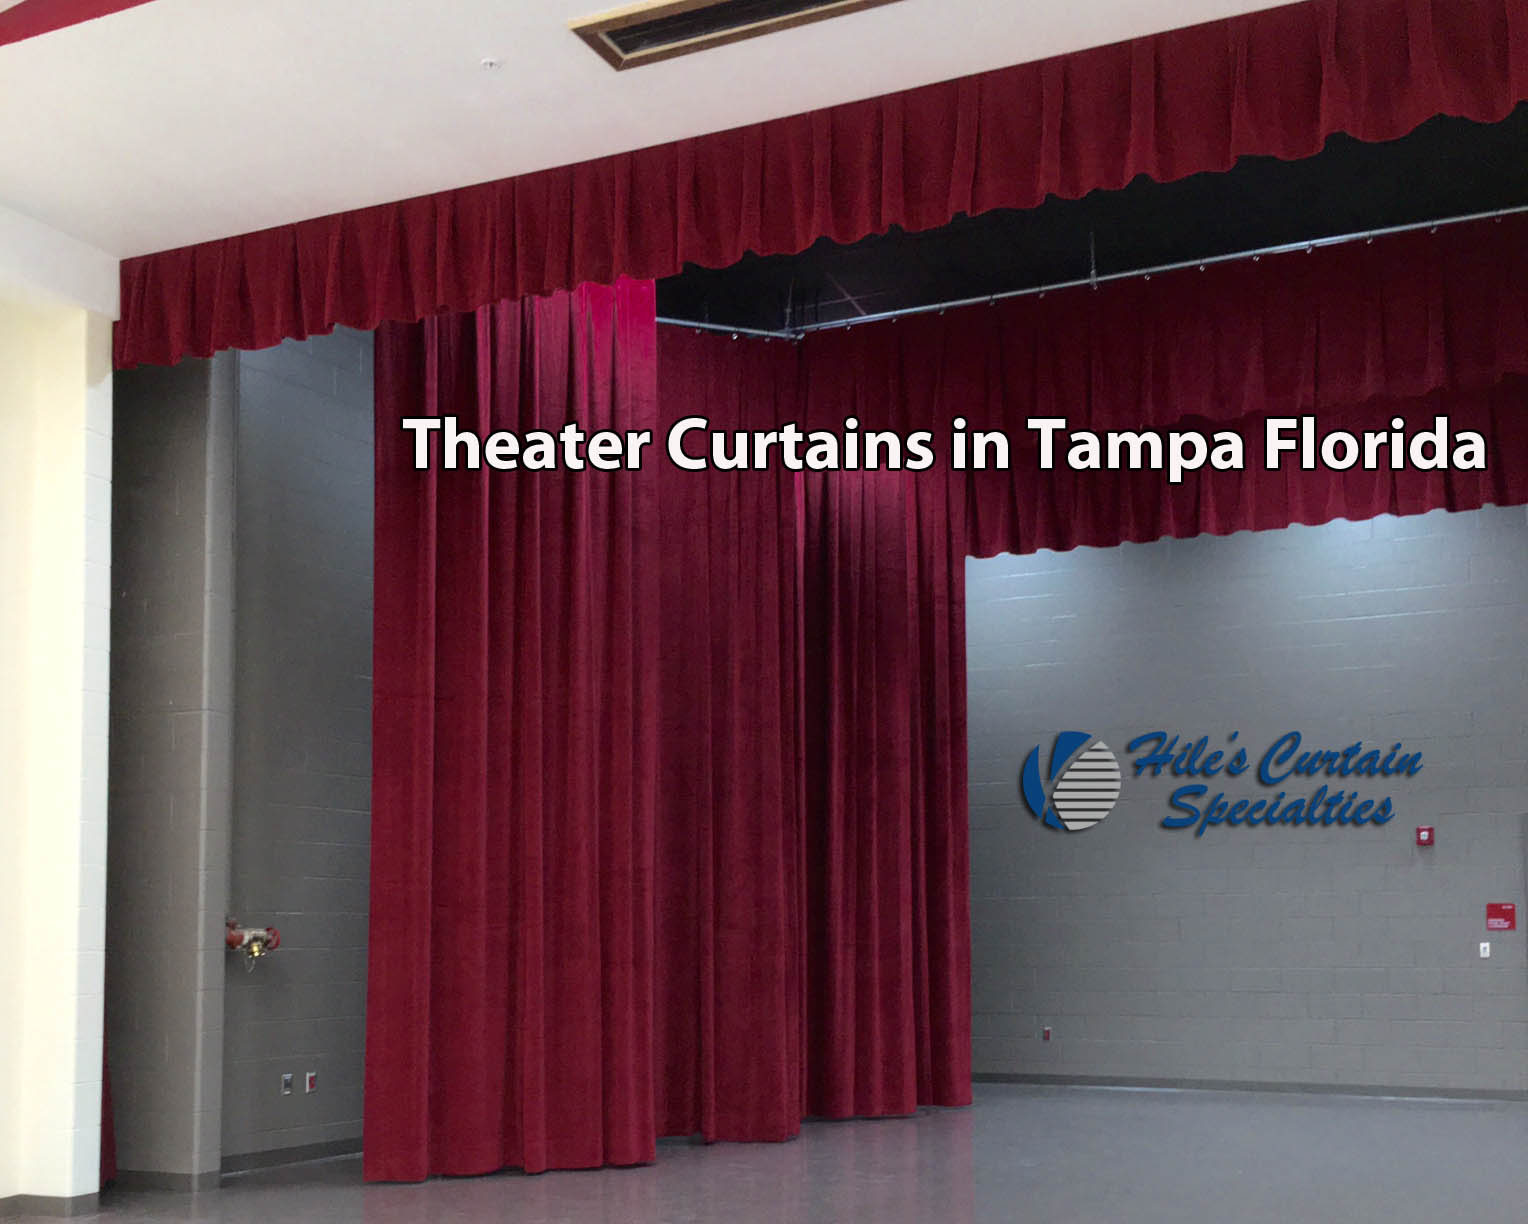 Theater Curtains in Tampa